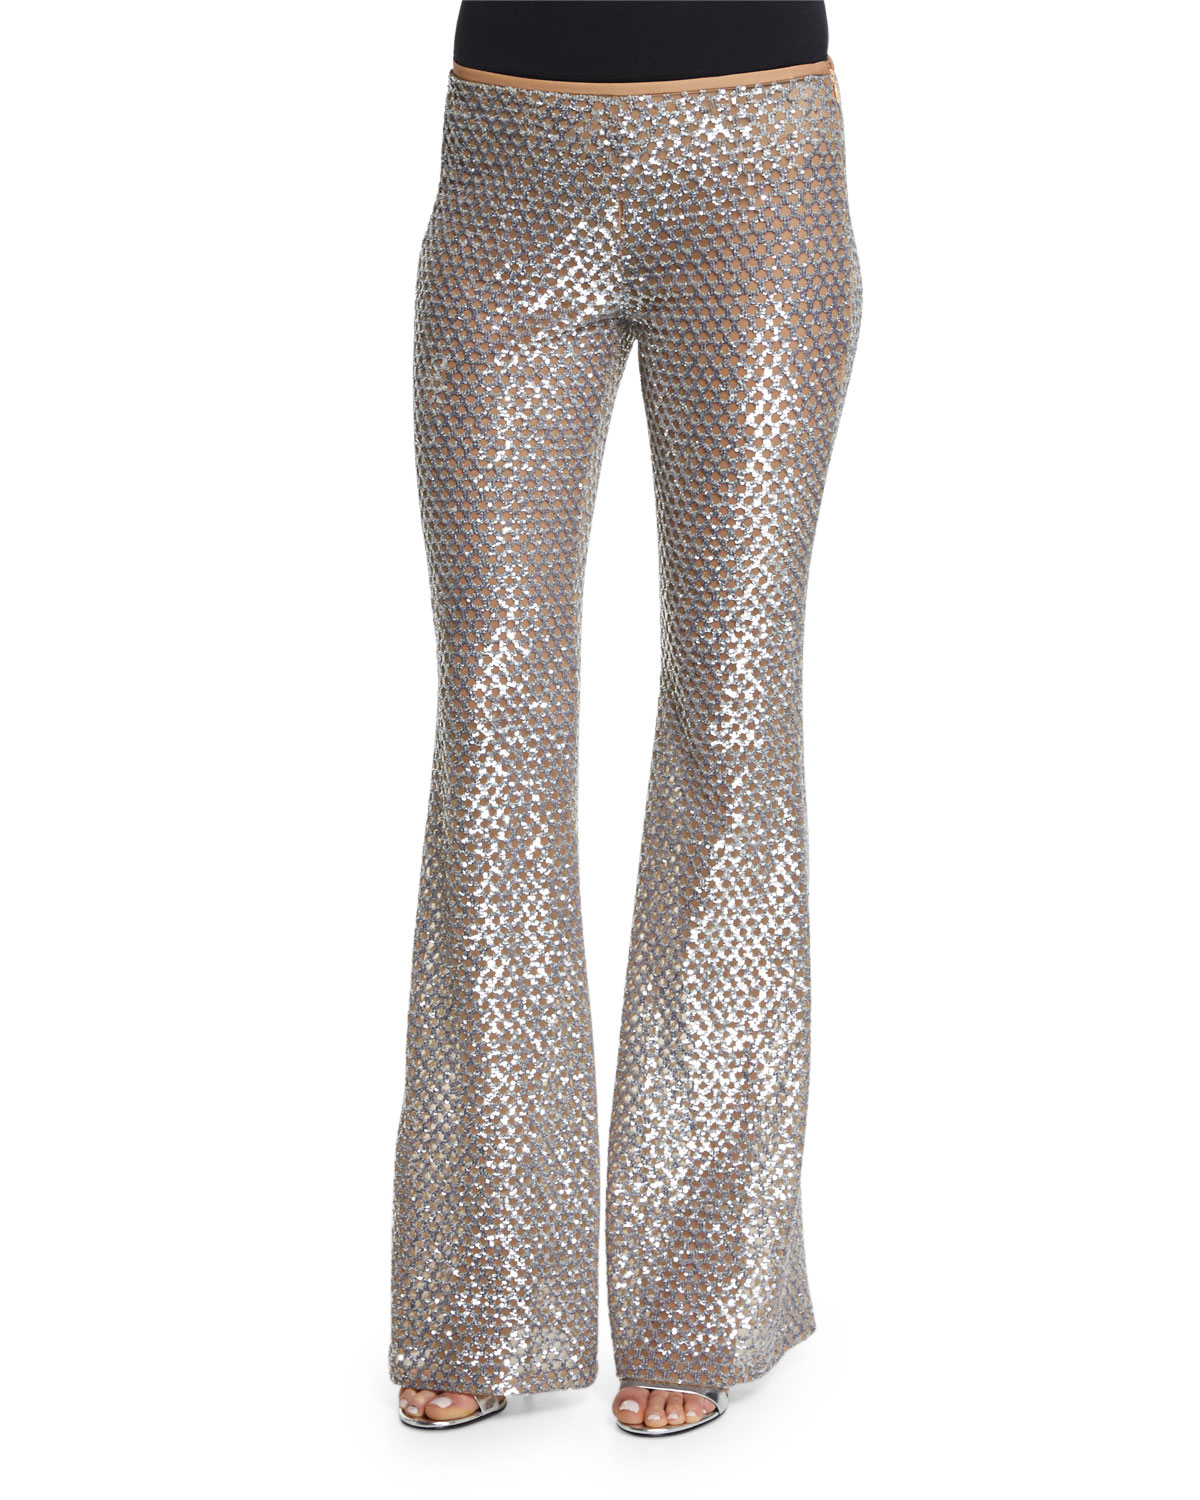 michael kors silversuntan embellished flare leg pants silver product 0 276766936 normal